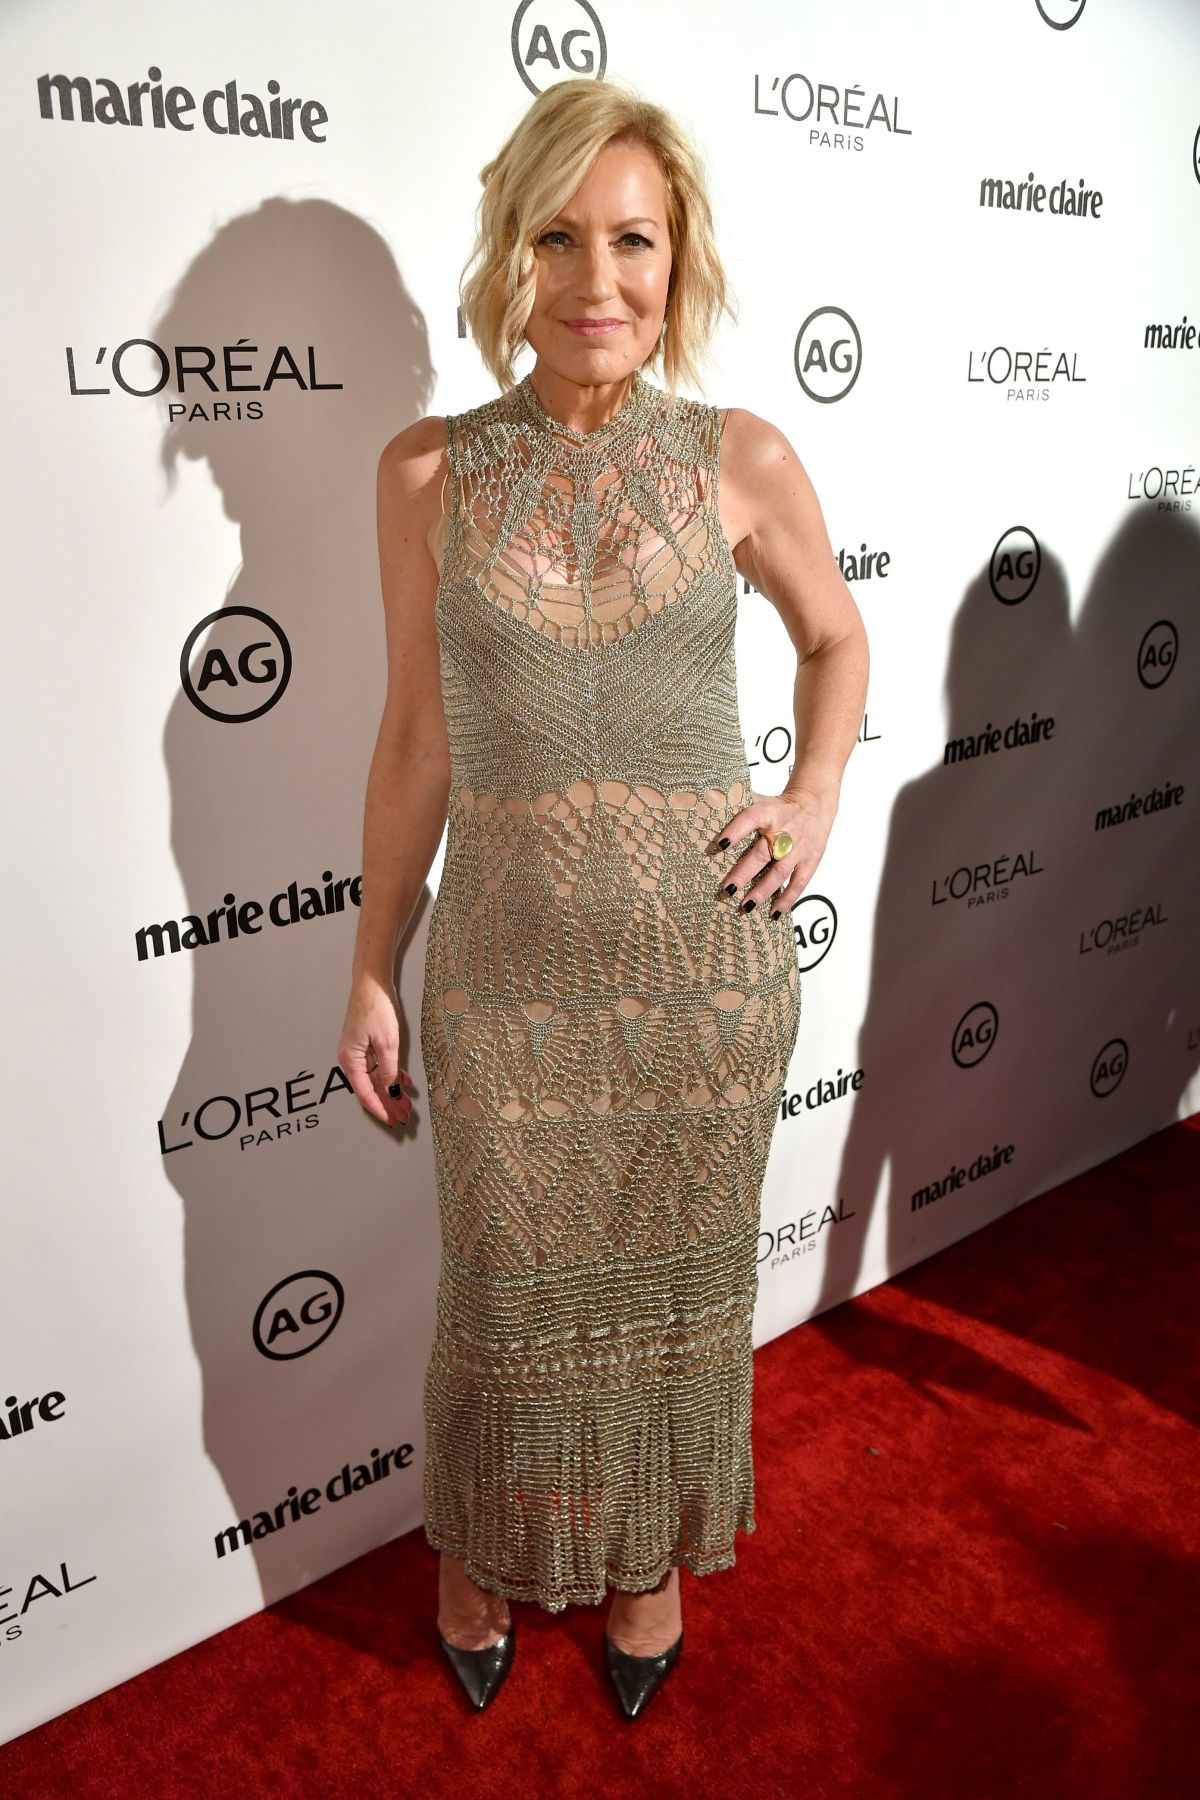 NANCY BERGER at Marie Claire's Image Maker Awards 2017 in West Hollywood 01/10/2017